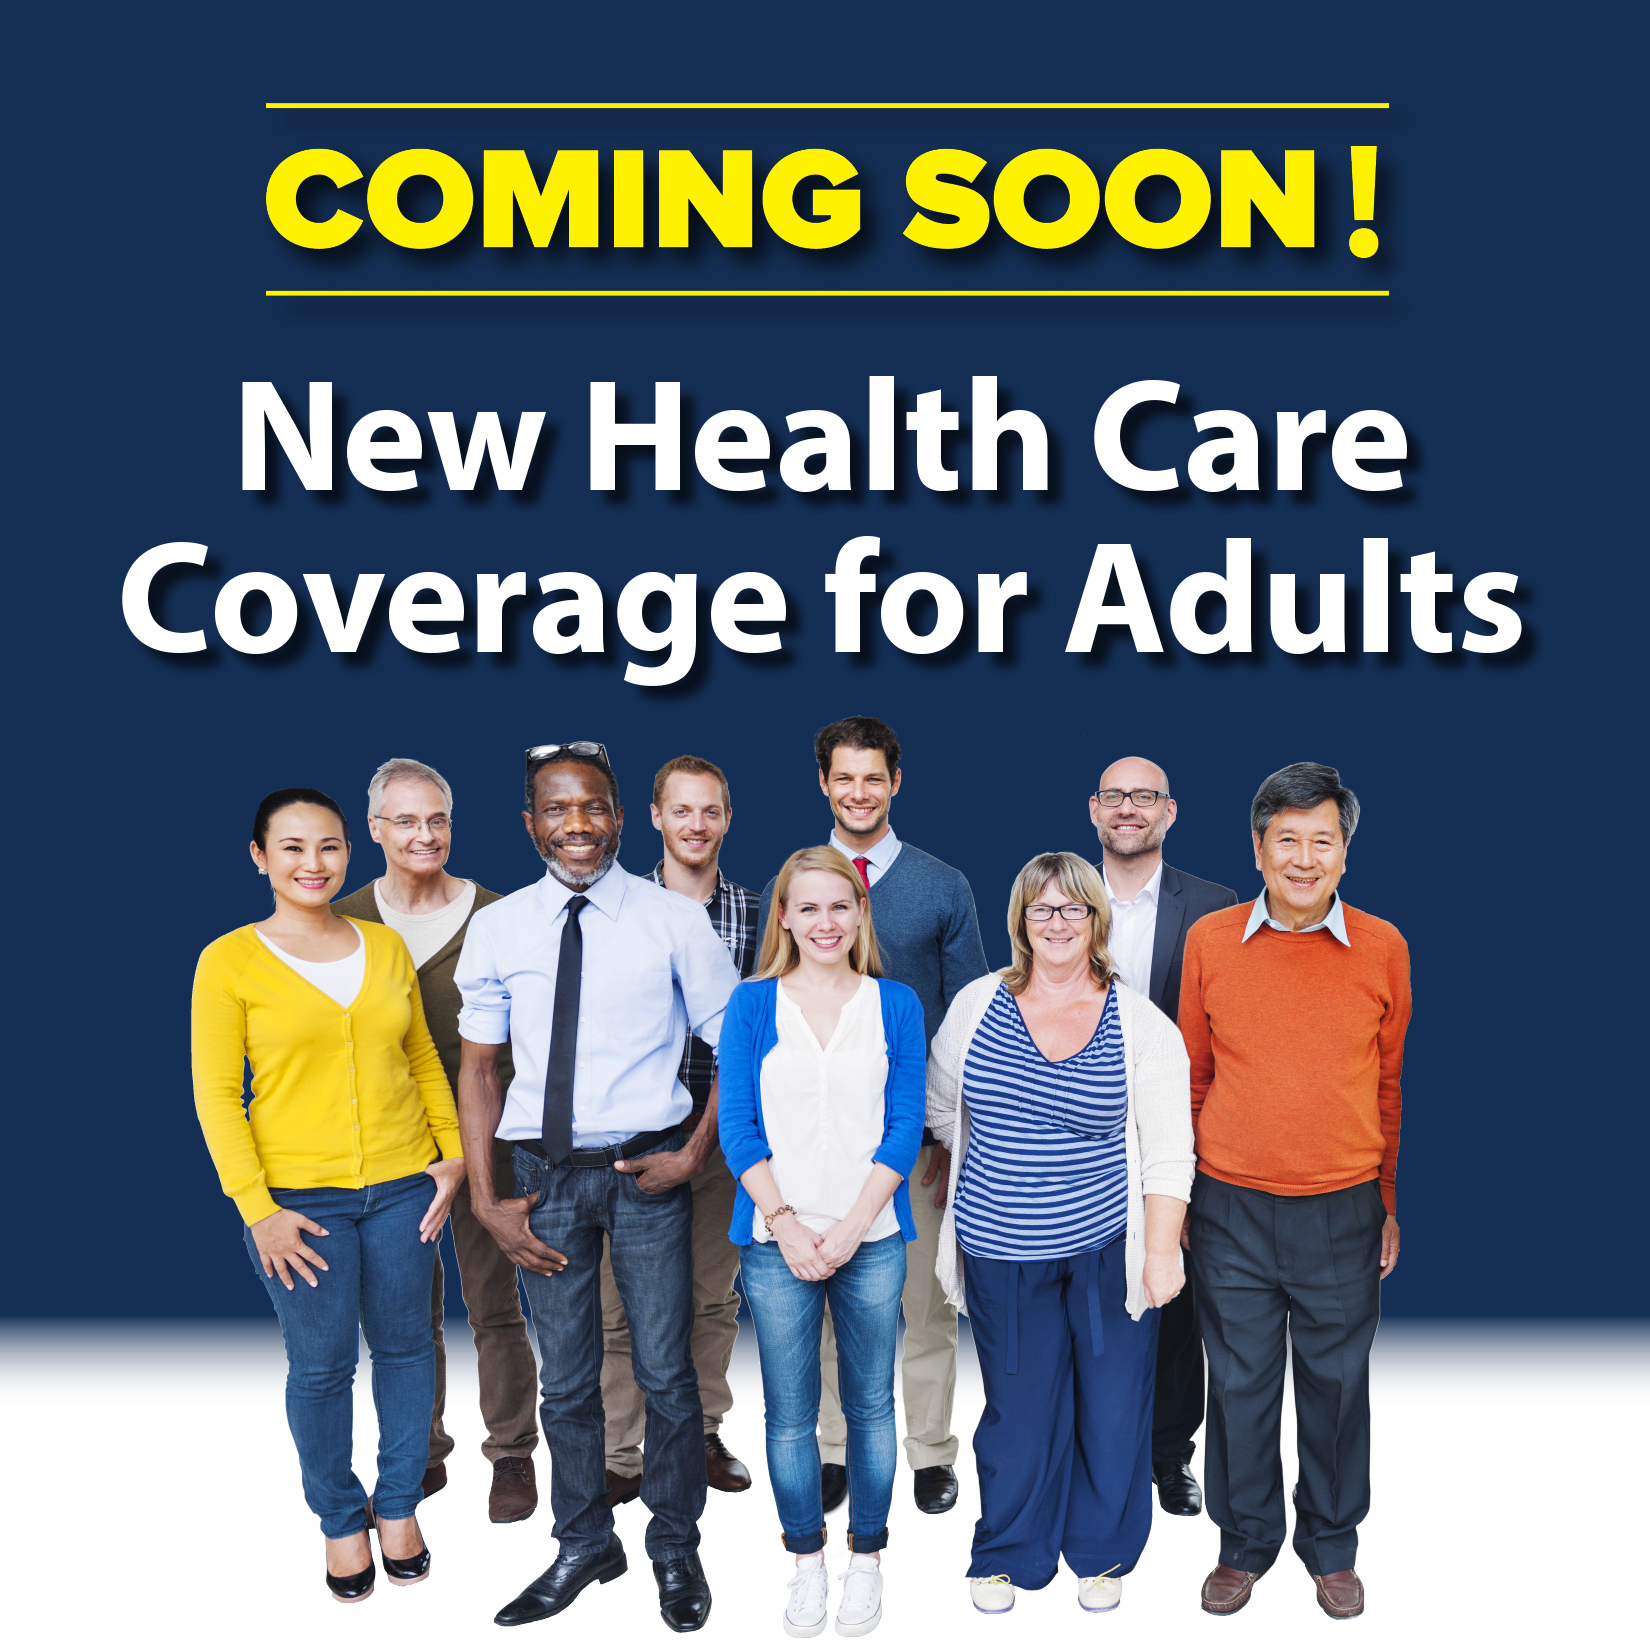 medicaid expansion coming soon